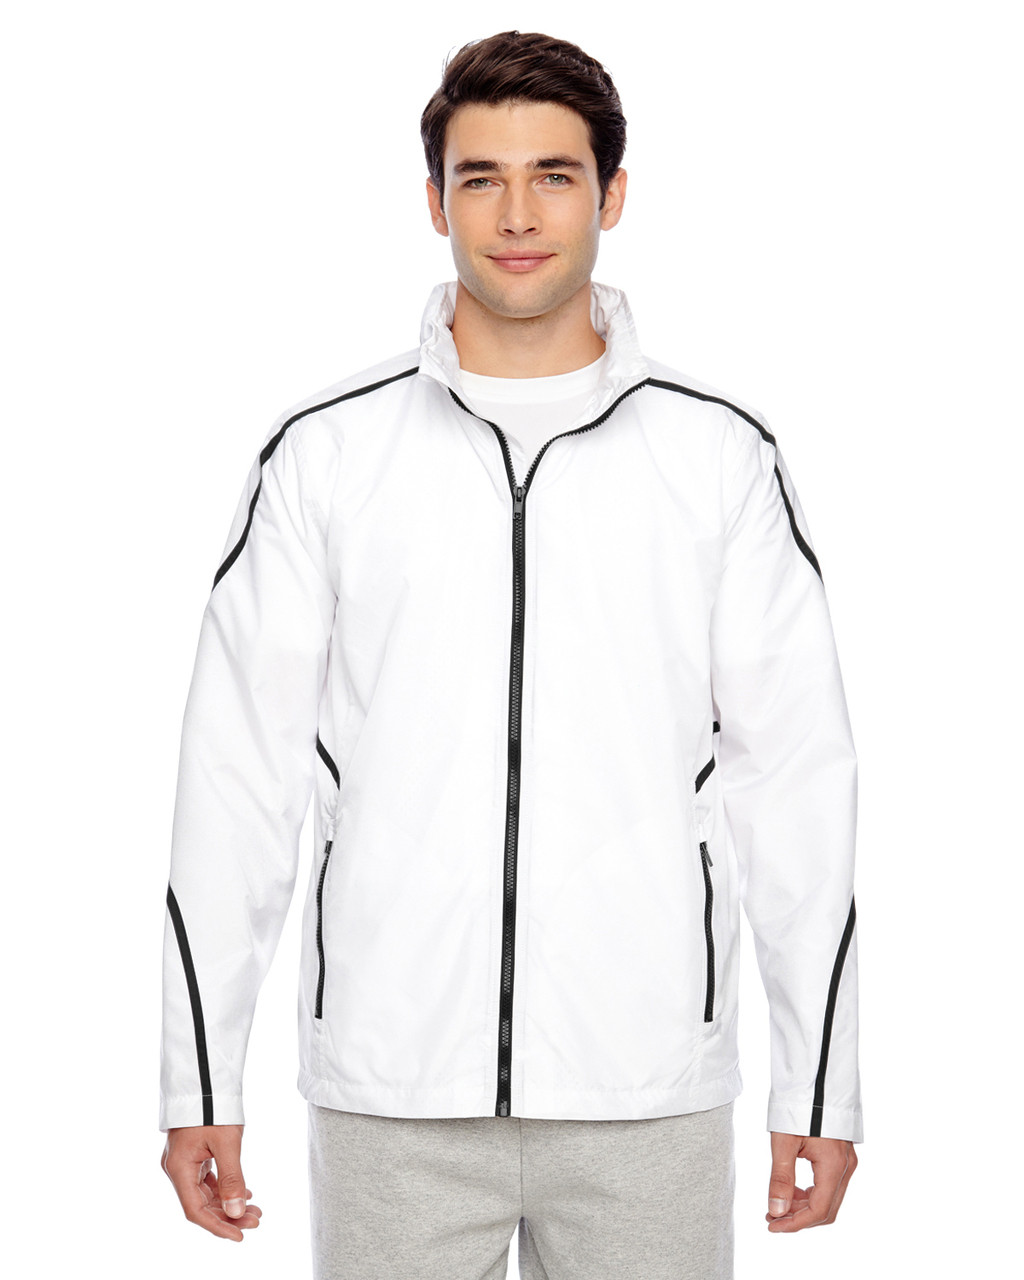 White - TT70 Team 365 Conquest Jacket with Mesh Lining | BlankClothing.ca